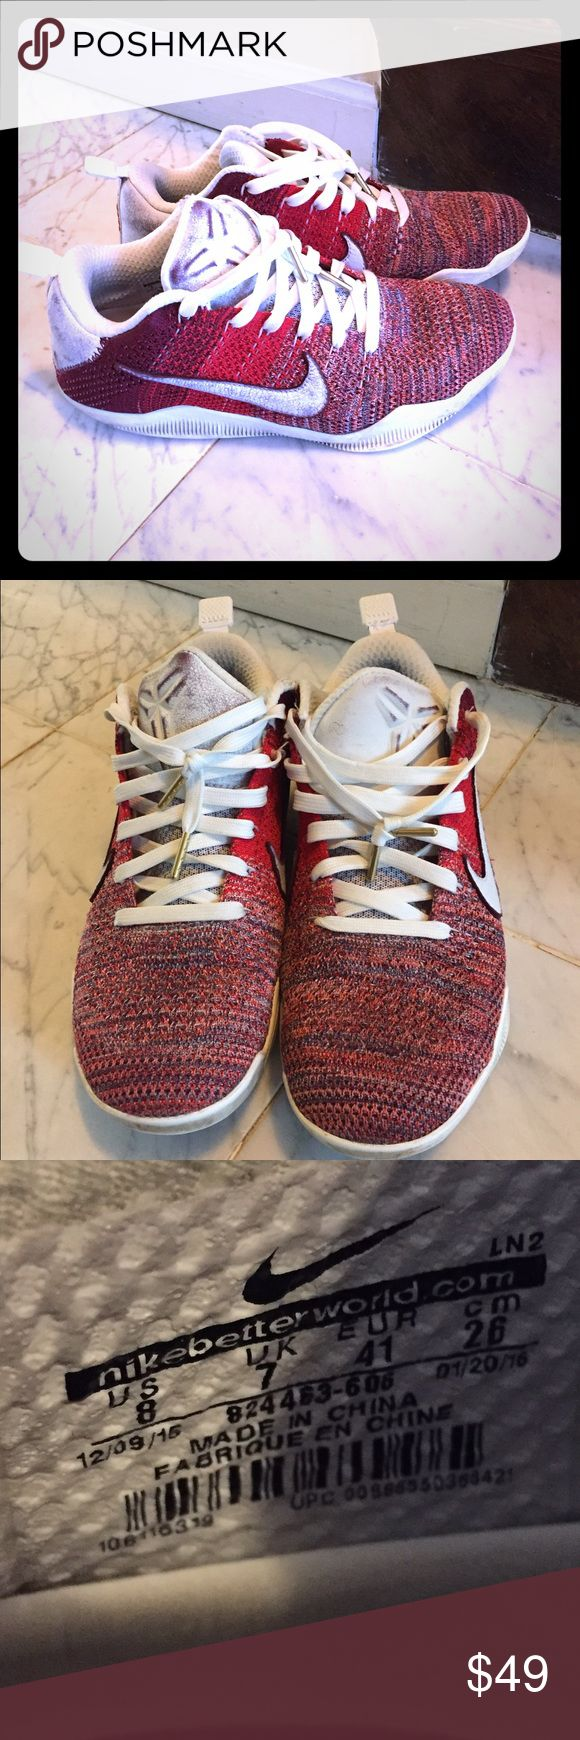 Kobe Bryant Basketball Sneakers--Gently loved Unique red woven print with white leather trim.  Tons of life left.  So adored them and wore them only as his special sneakers. Nike Shoes Sneakers